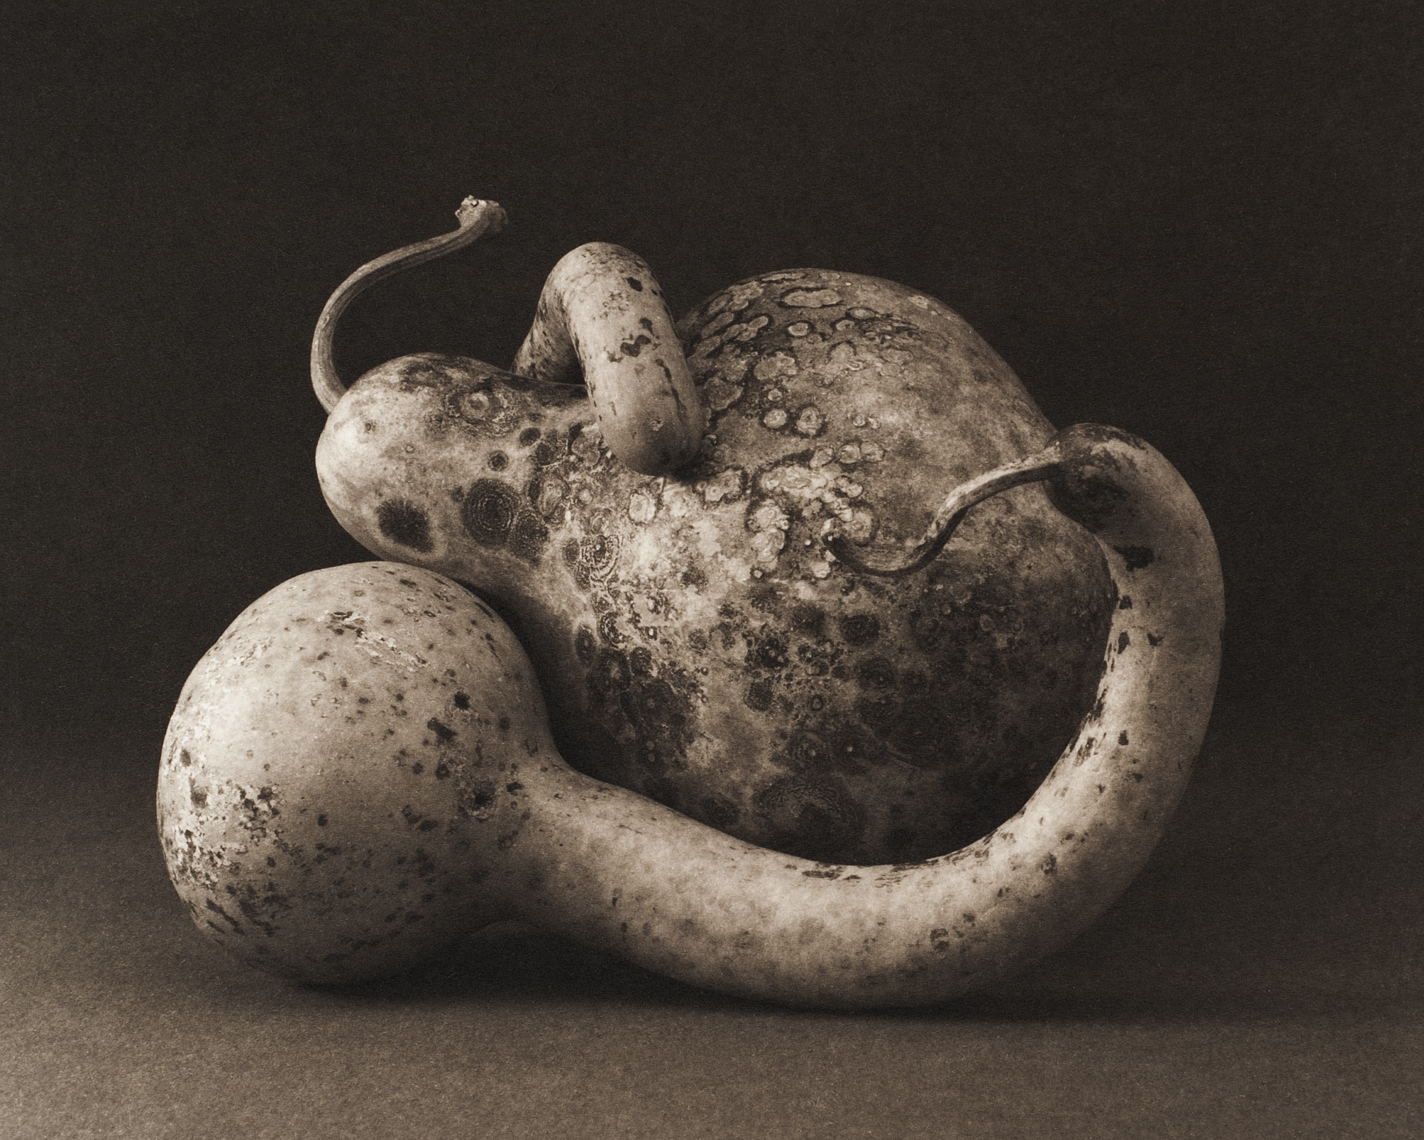 davidhoptman-photo-platinum-palladium-pp_gourdlove copy.jpg